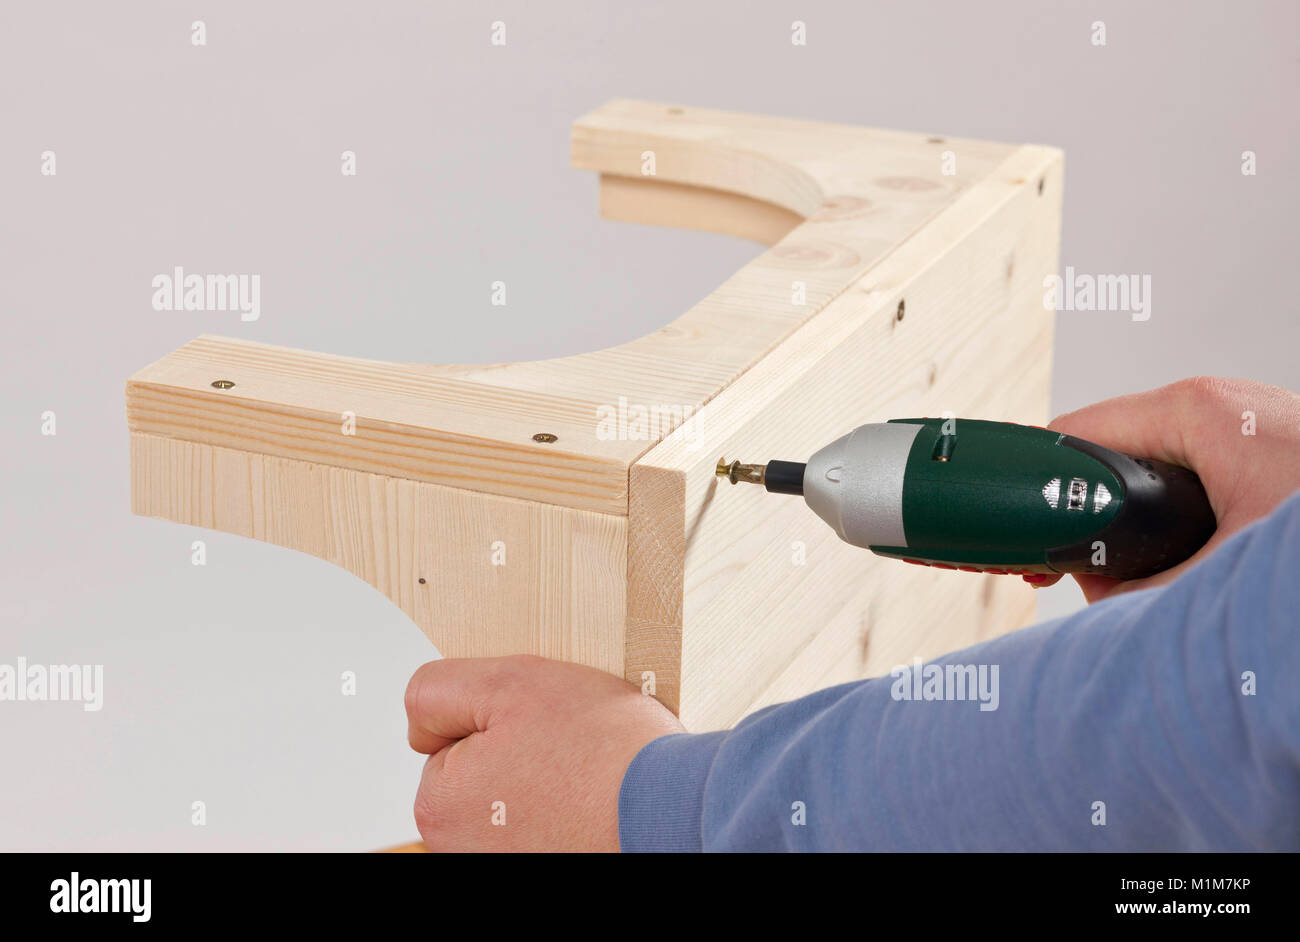 Guinea Pig, Cavie. Assembly instructions for a selfmade Cavie house. Germany - Stock Image